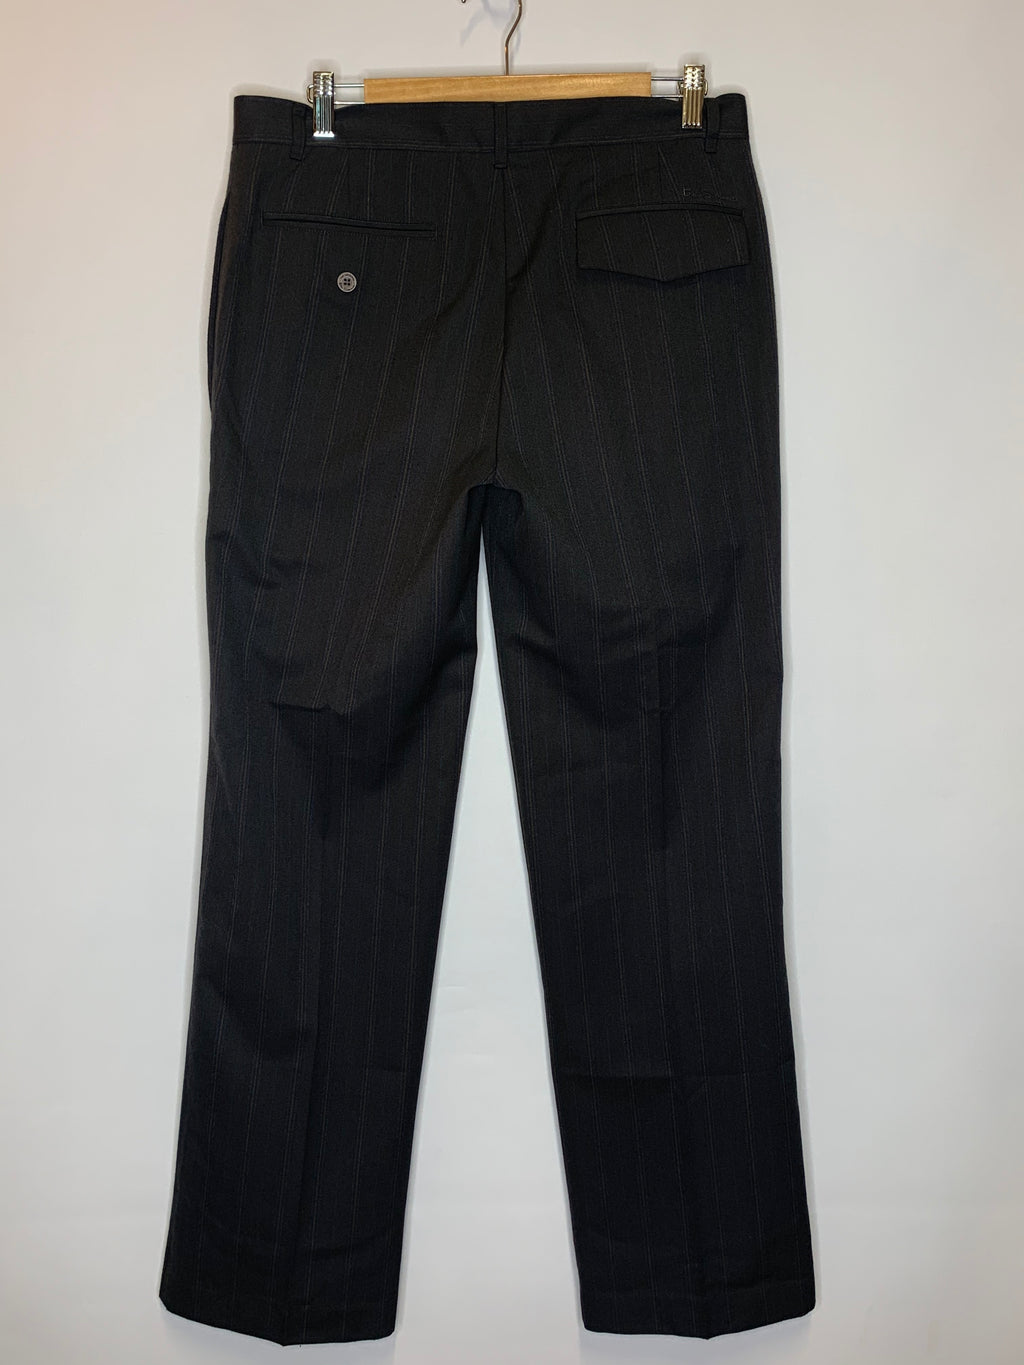 Ben Sherman Trousers